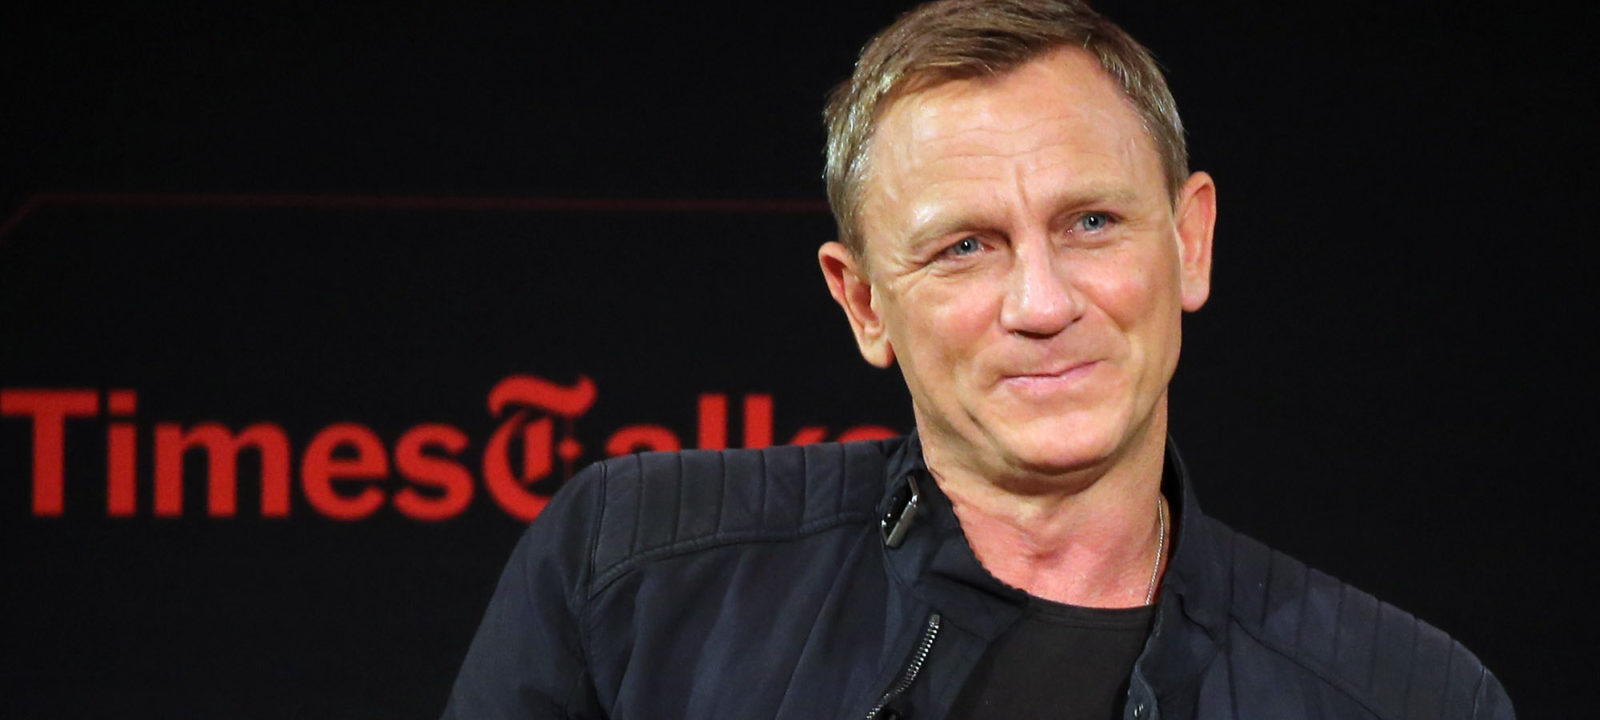 "Actor Daniel Craig chats with moderator Logan Hill during the ""Times Talks Presents: Spectre, An Evening With Daniel Craig And Sam Mendes' event at The New School on November 4, 2015 in New York City."